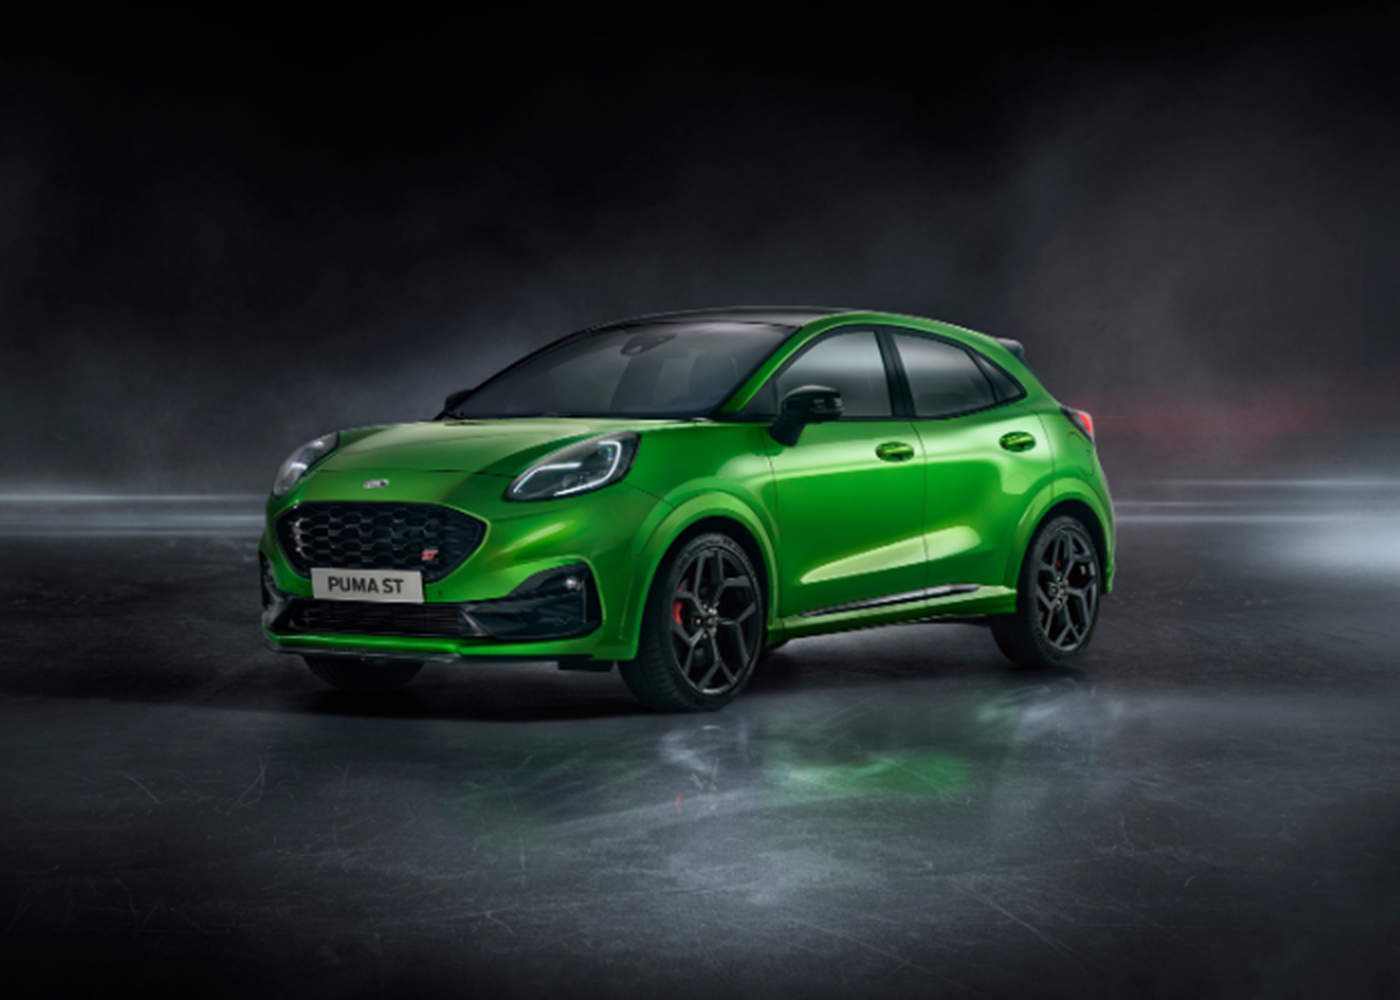 New Ford Puma ST in Mean Green